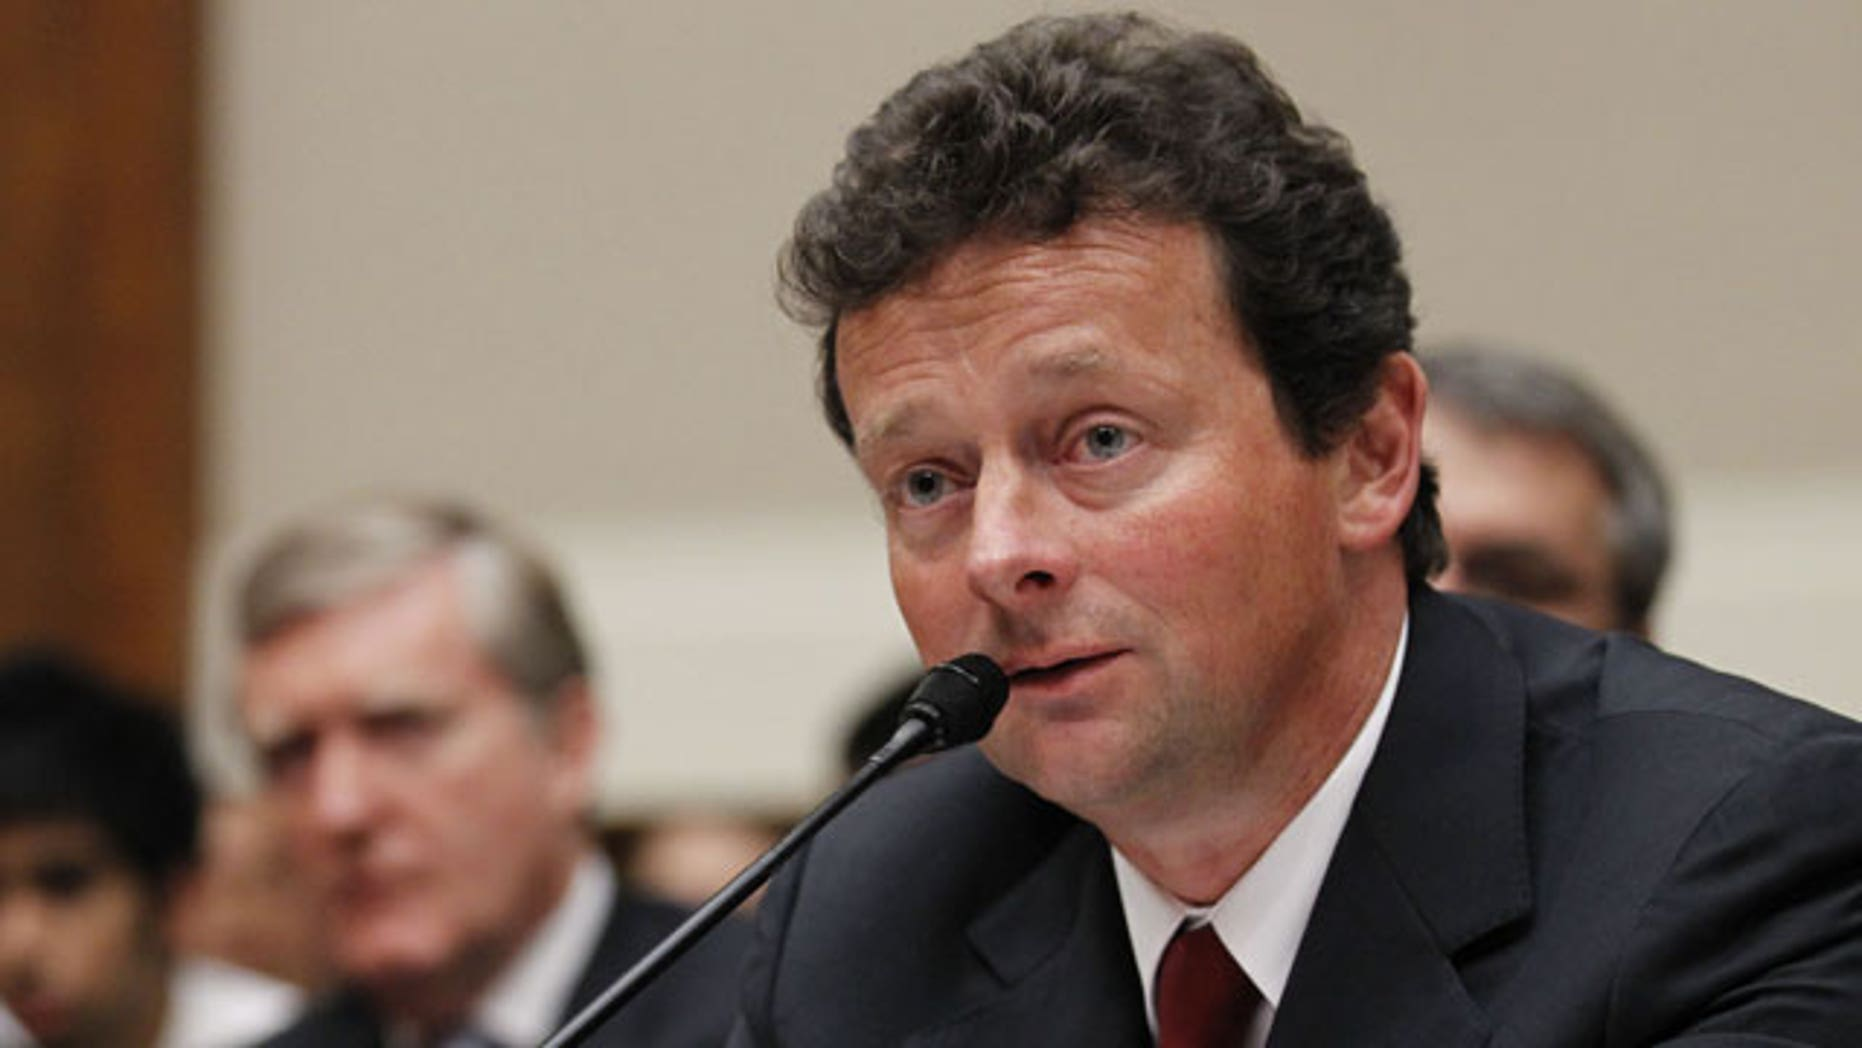 June 17: BP CEO Tony Hayward testifies during a House Oversight and Investigations subcommittee hearing on the role of BP in the Deepwater Horizon Explosion and oil spill, on Capitol Hill in Washington.